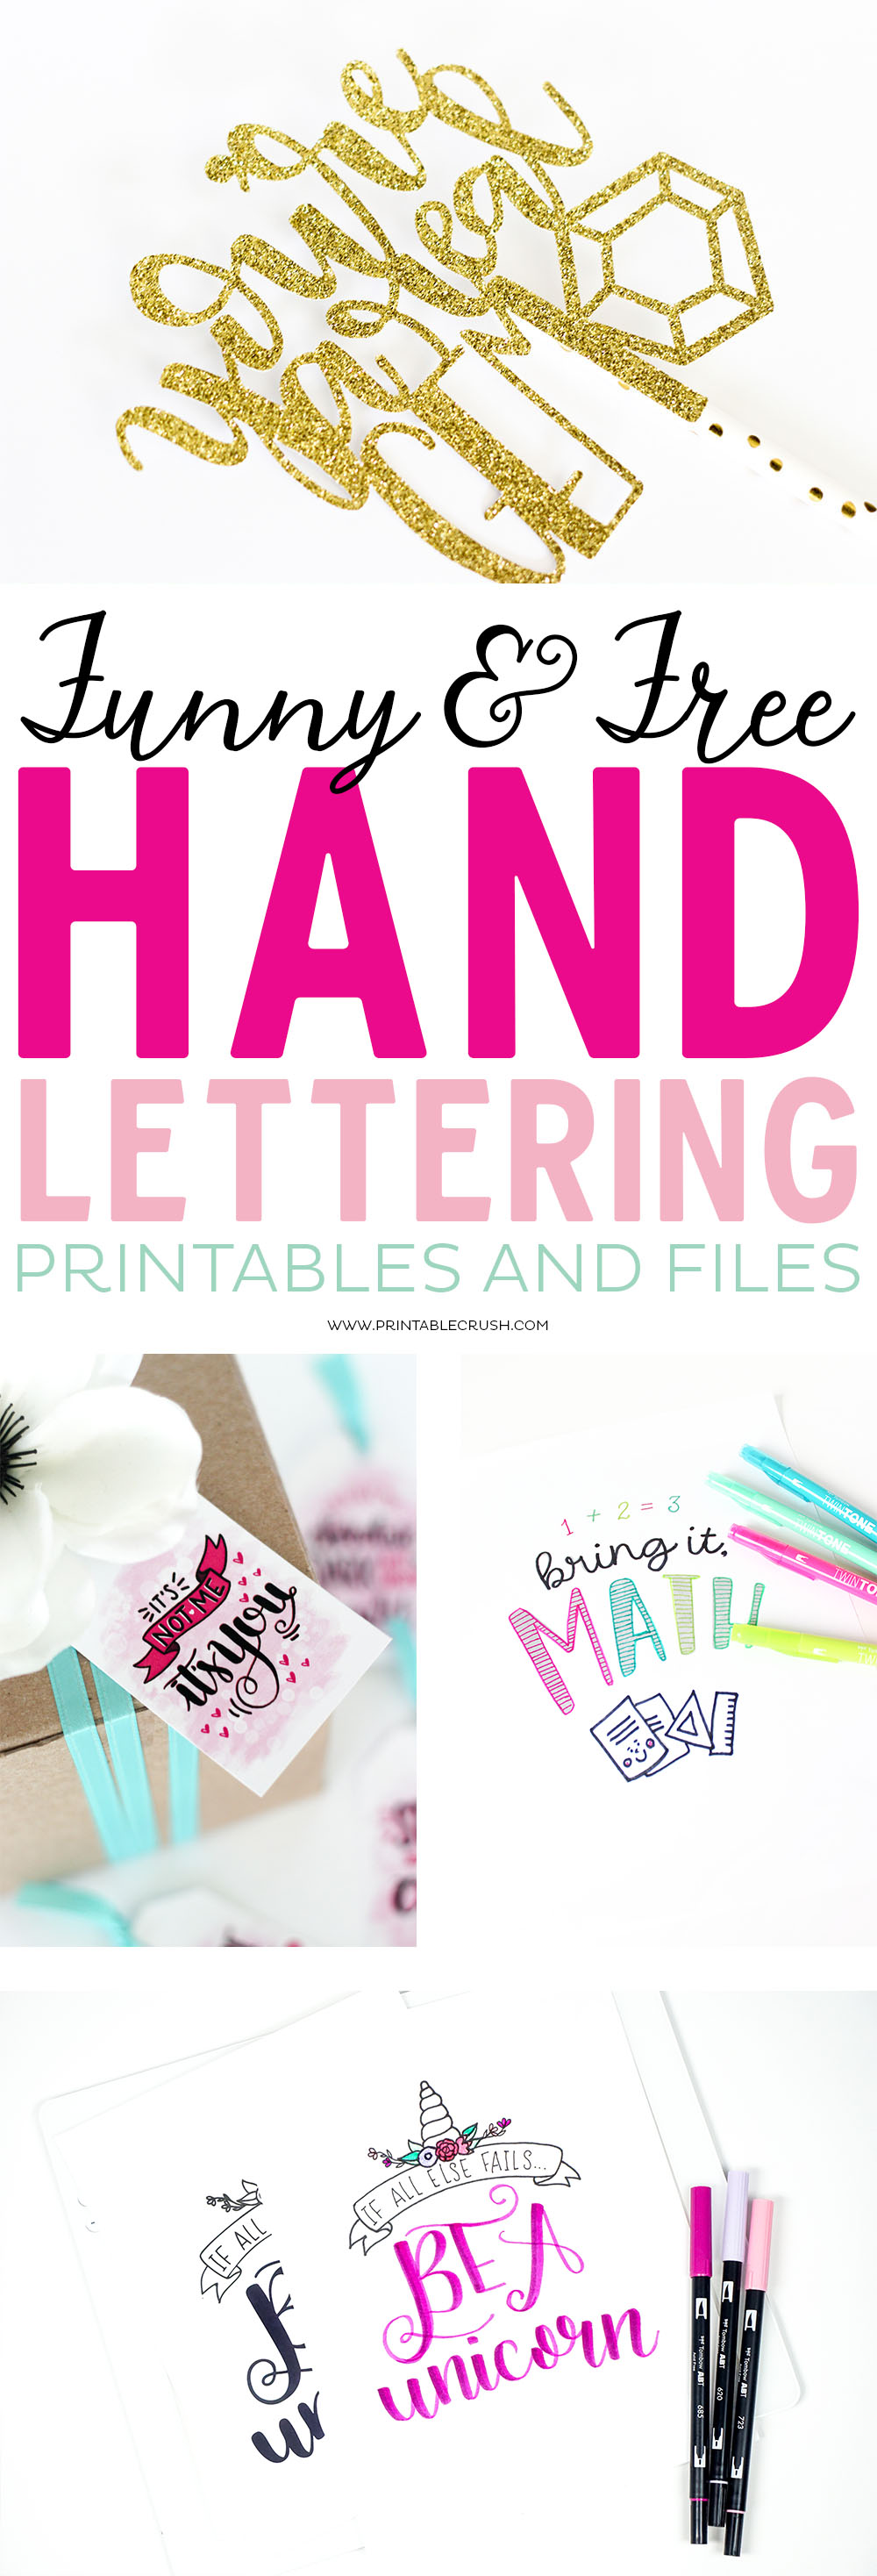 If you love lettering and you have a sense of humor, you'll love these 8 FREE Funny Hand Lettering Printables and Files. You'll find letteringpractice sheets, SVG Files, free printables, and more!